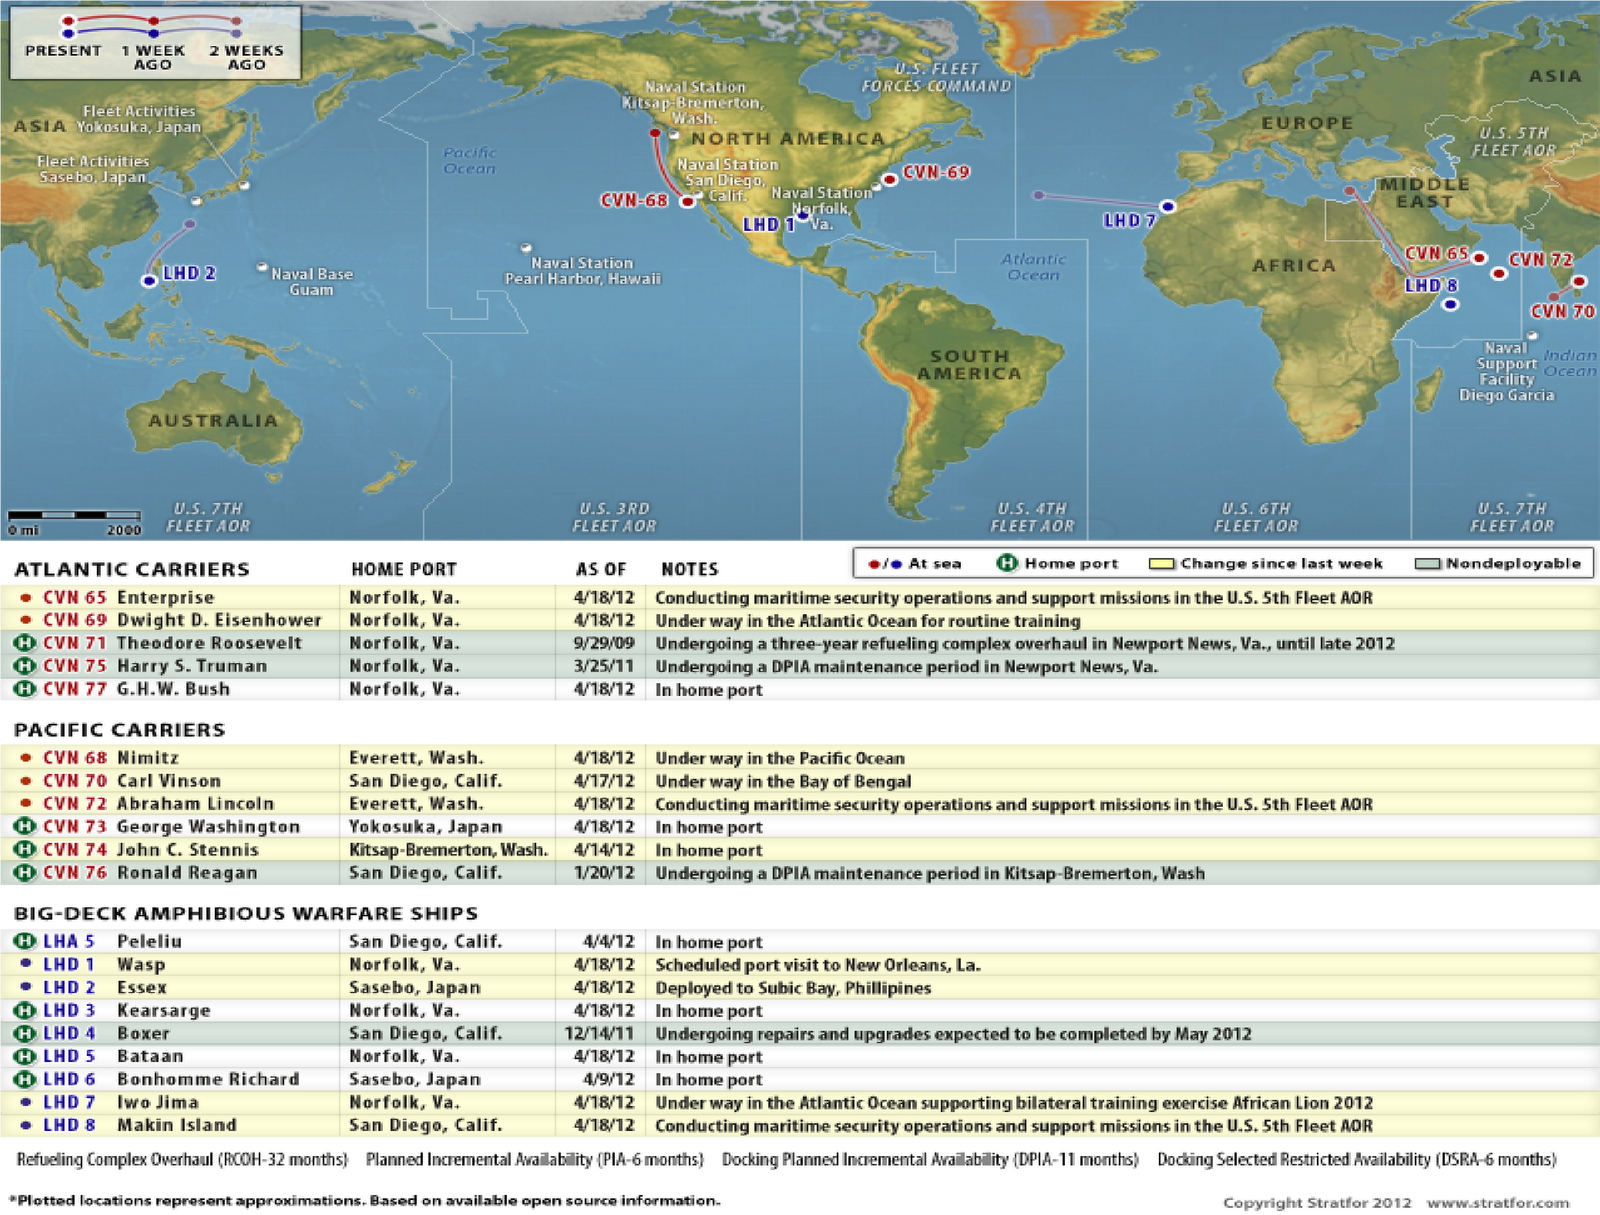 Us Naval Map 2012 Defence Economy: U.S. Naval Update Map: April 18, 2012